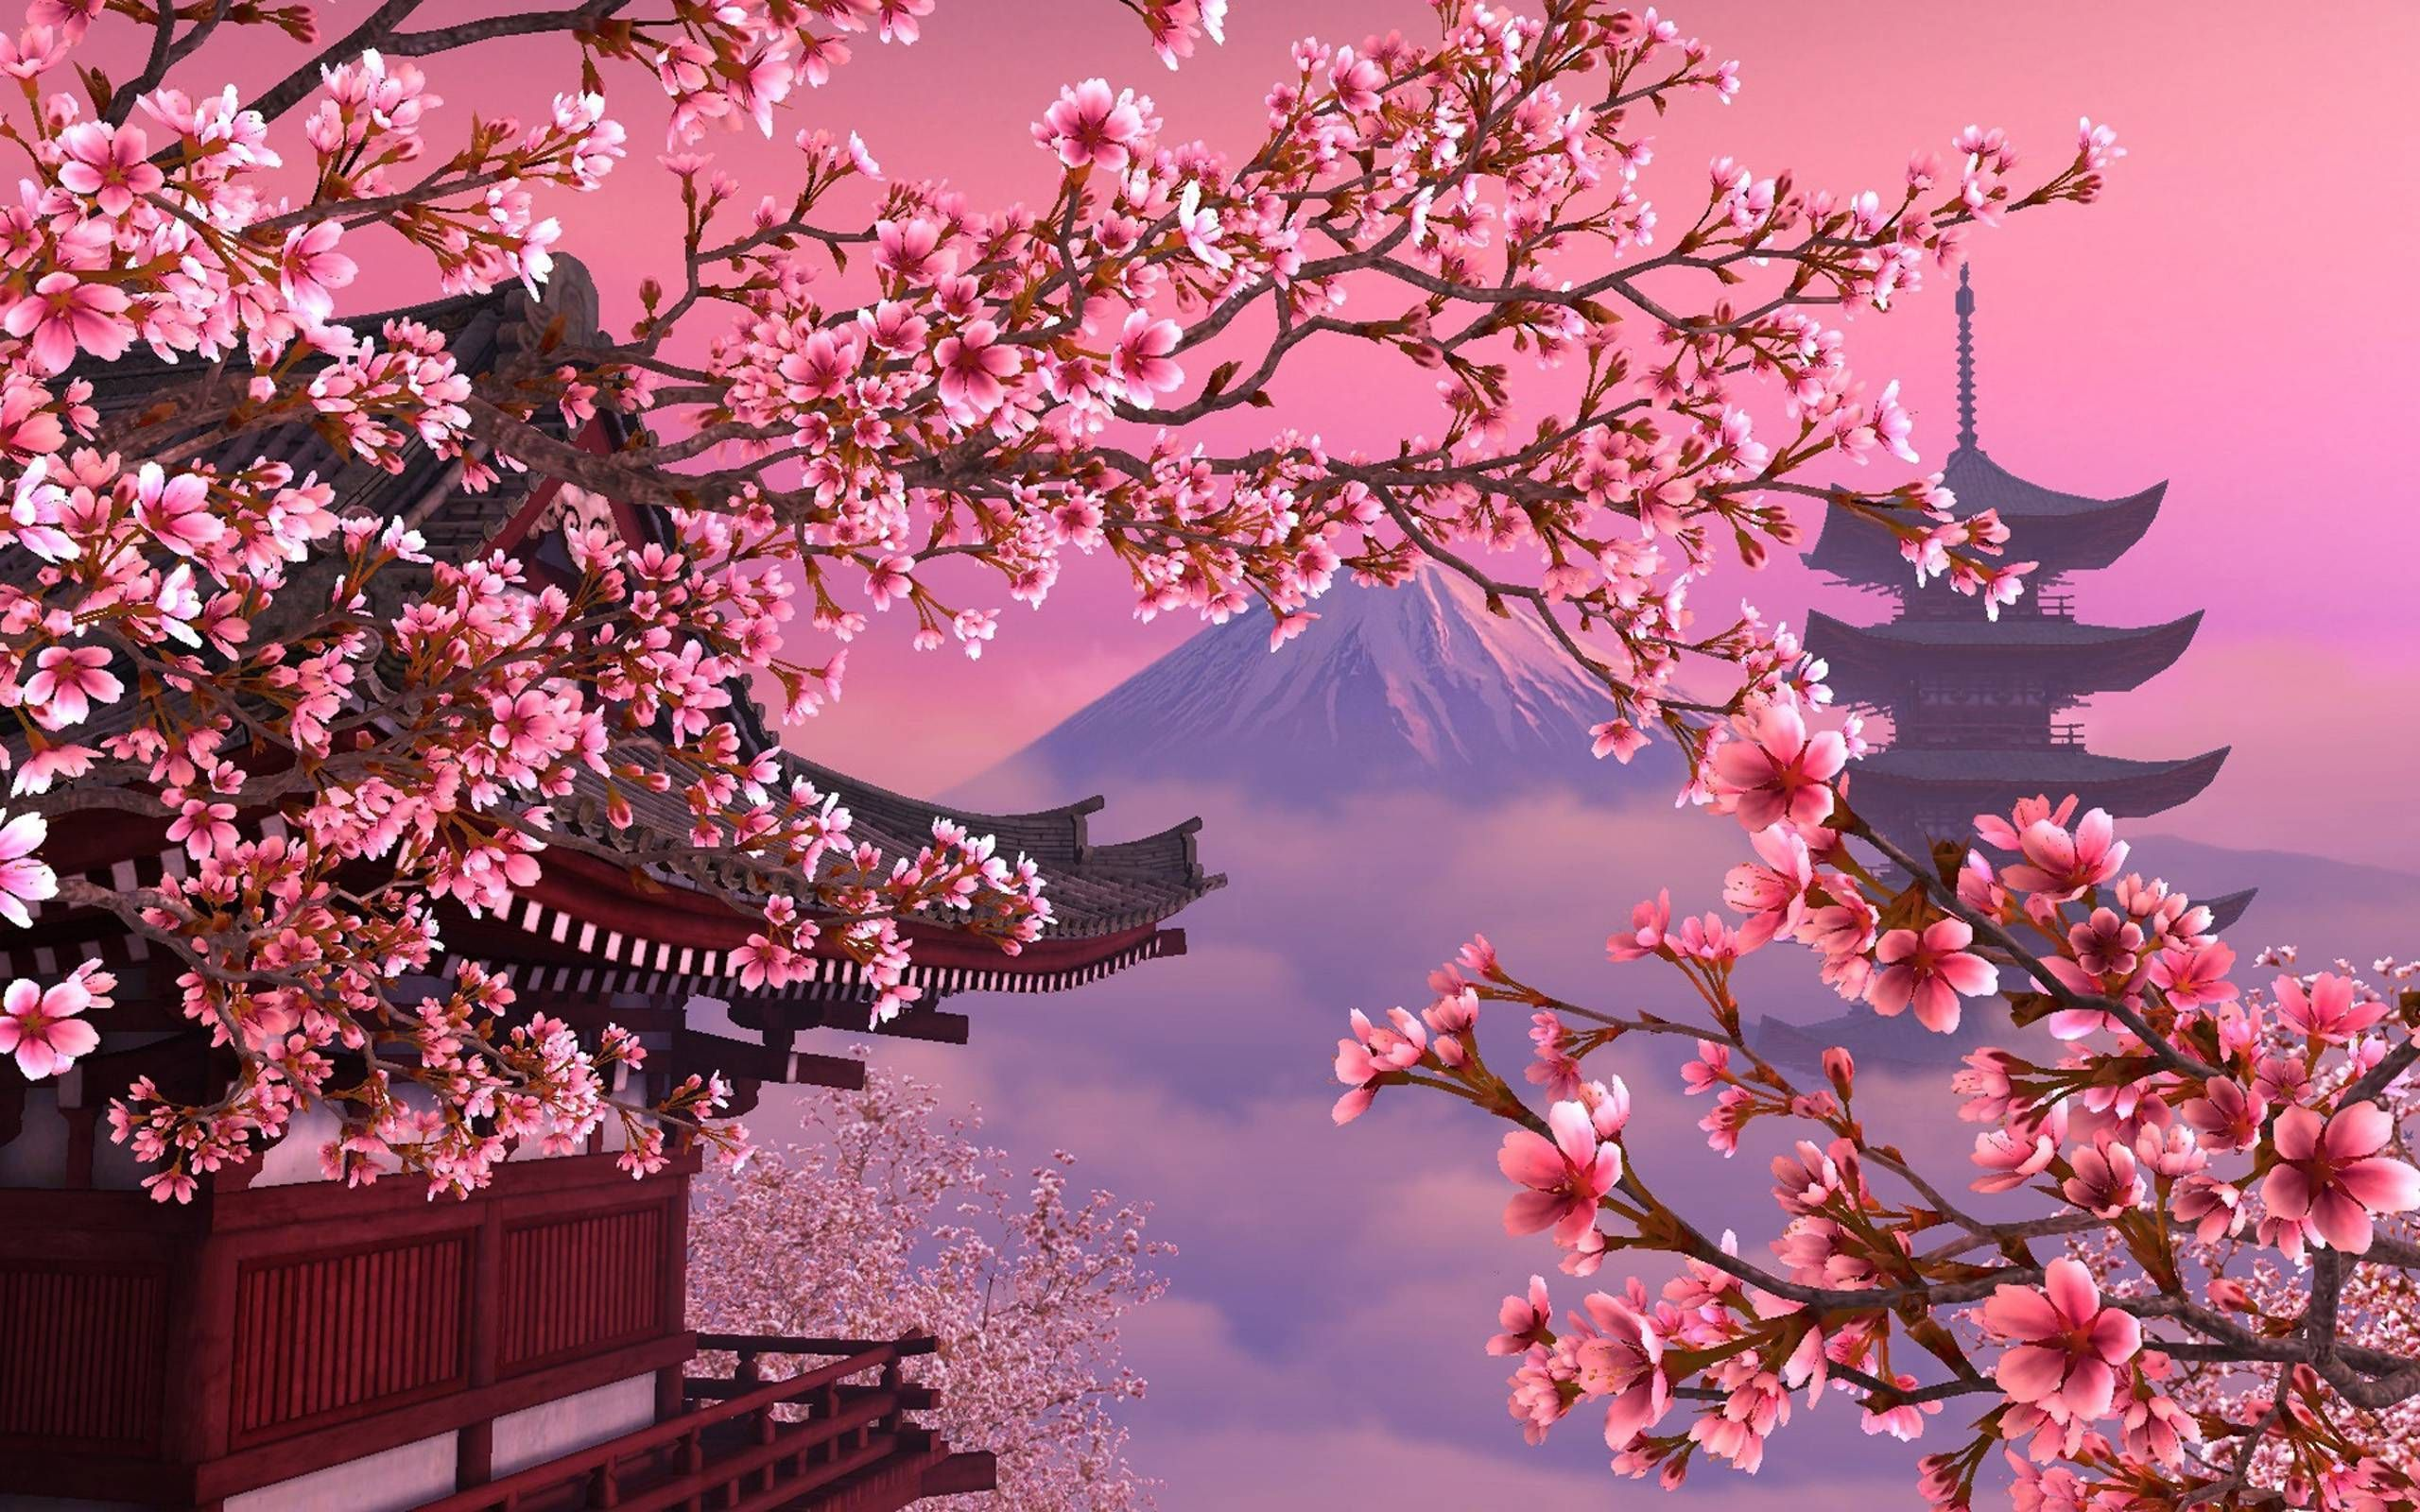 2 Jpg 2560 1600 Cherry Blossom Wallpaper Scenery Wallpaper Aesthetic Desktop Wallpaper